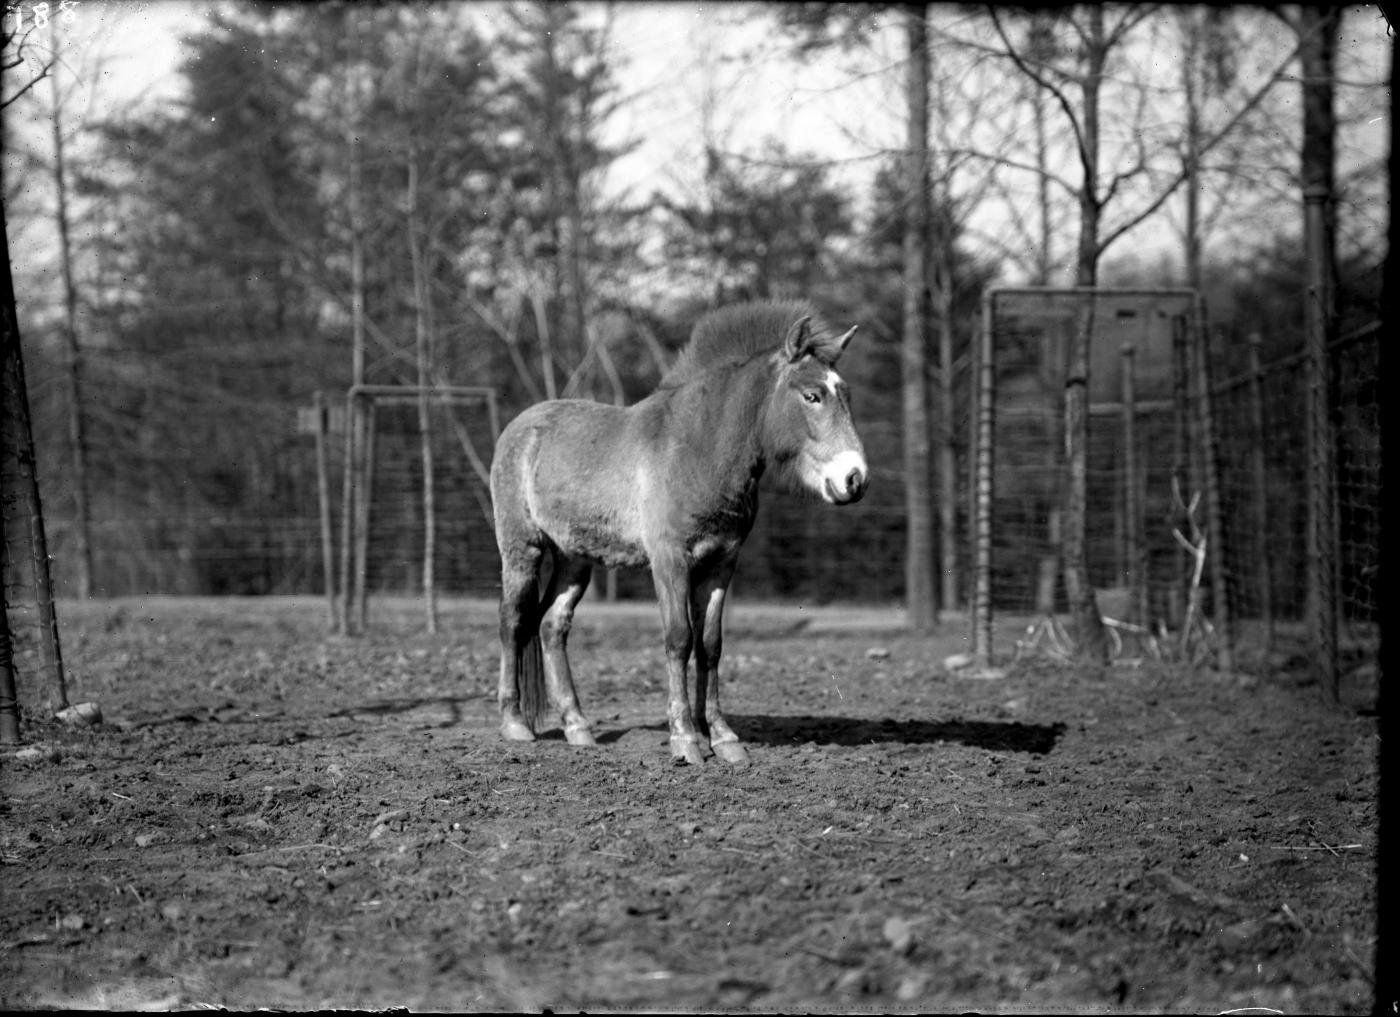 A Przewalski's horse at the Smithsonian's National Zoo in 1910.